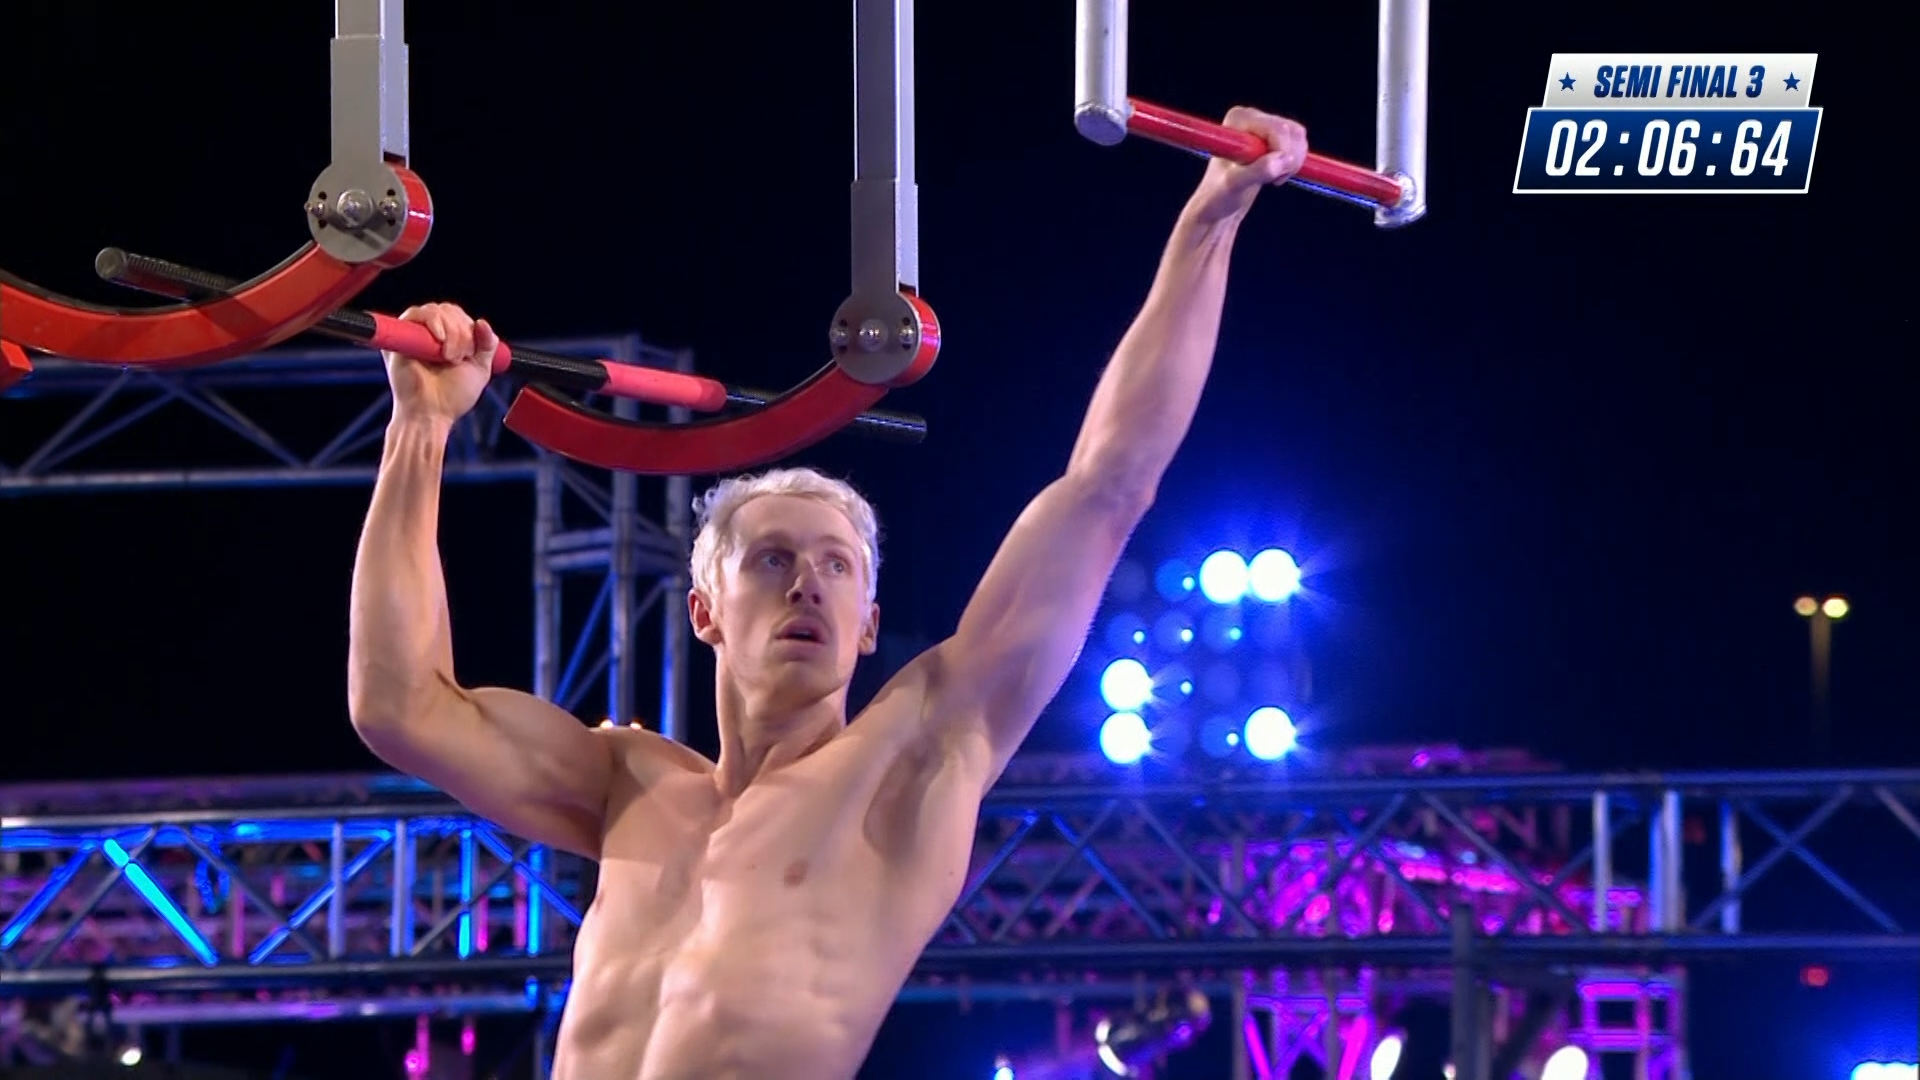 Ep8 - Shock Semi Final bomb out for Ben Polson - Australian Ninja Warrior 2019